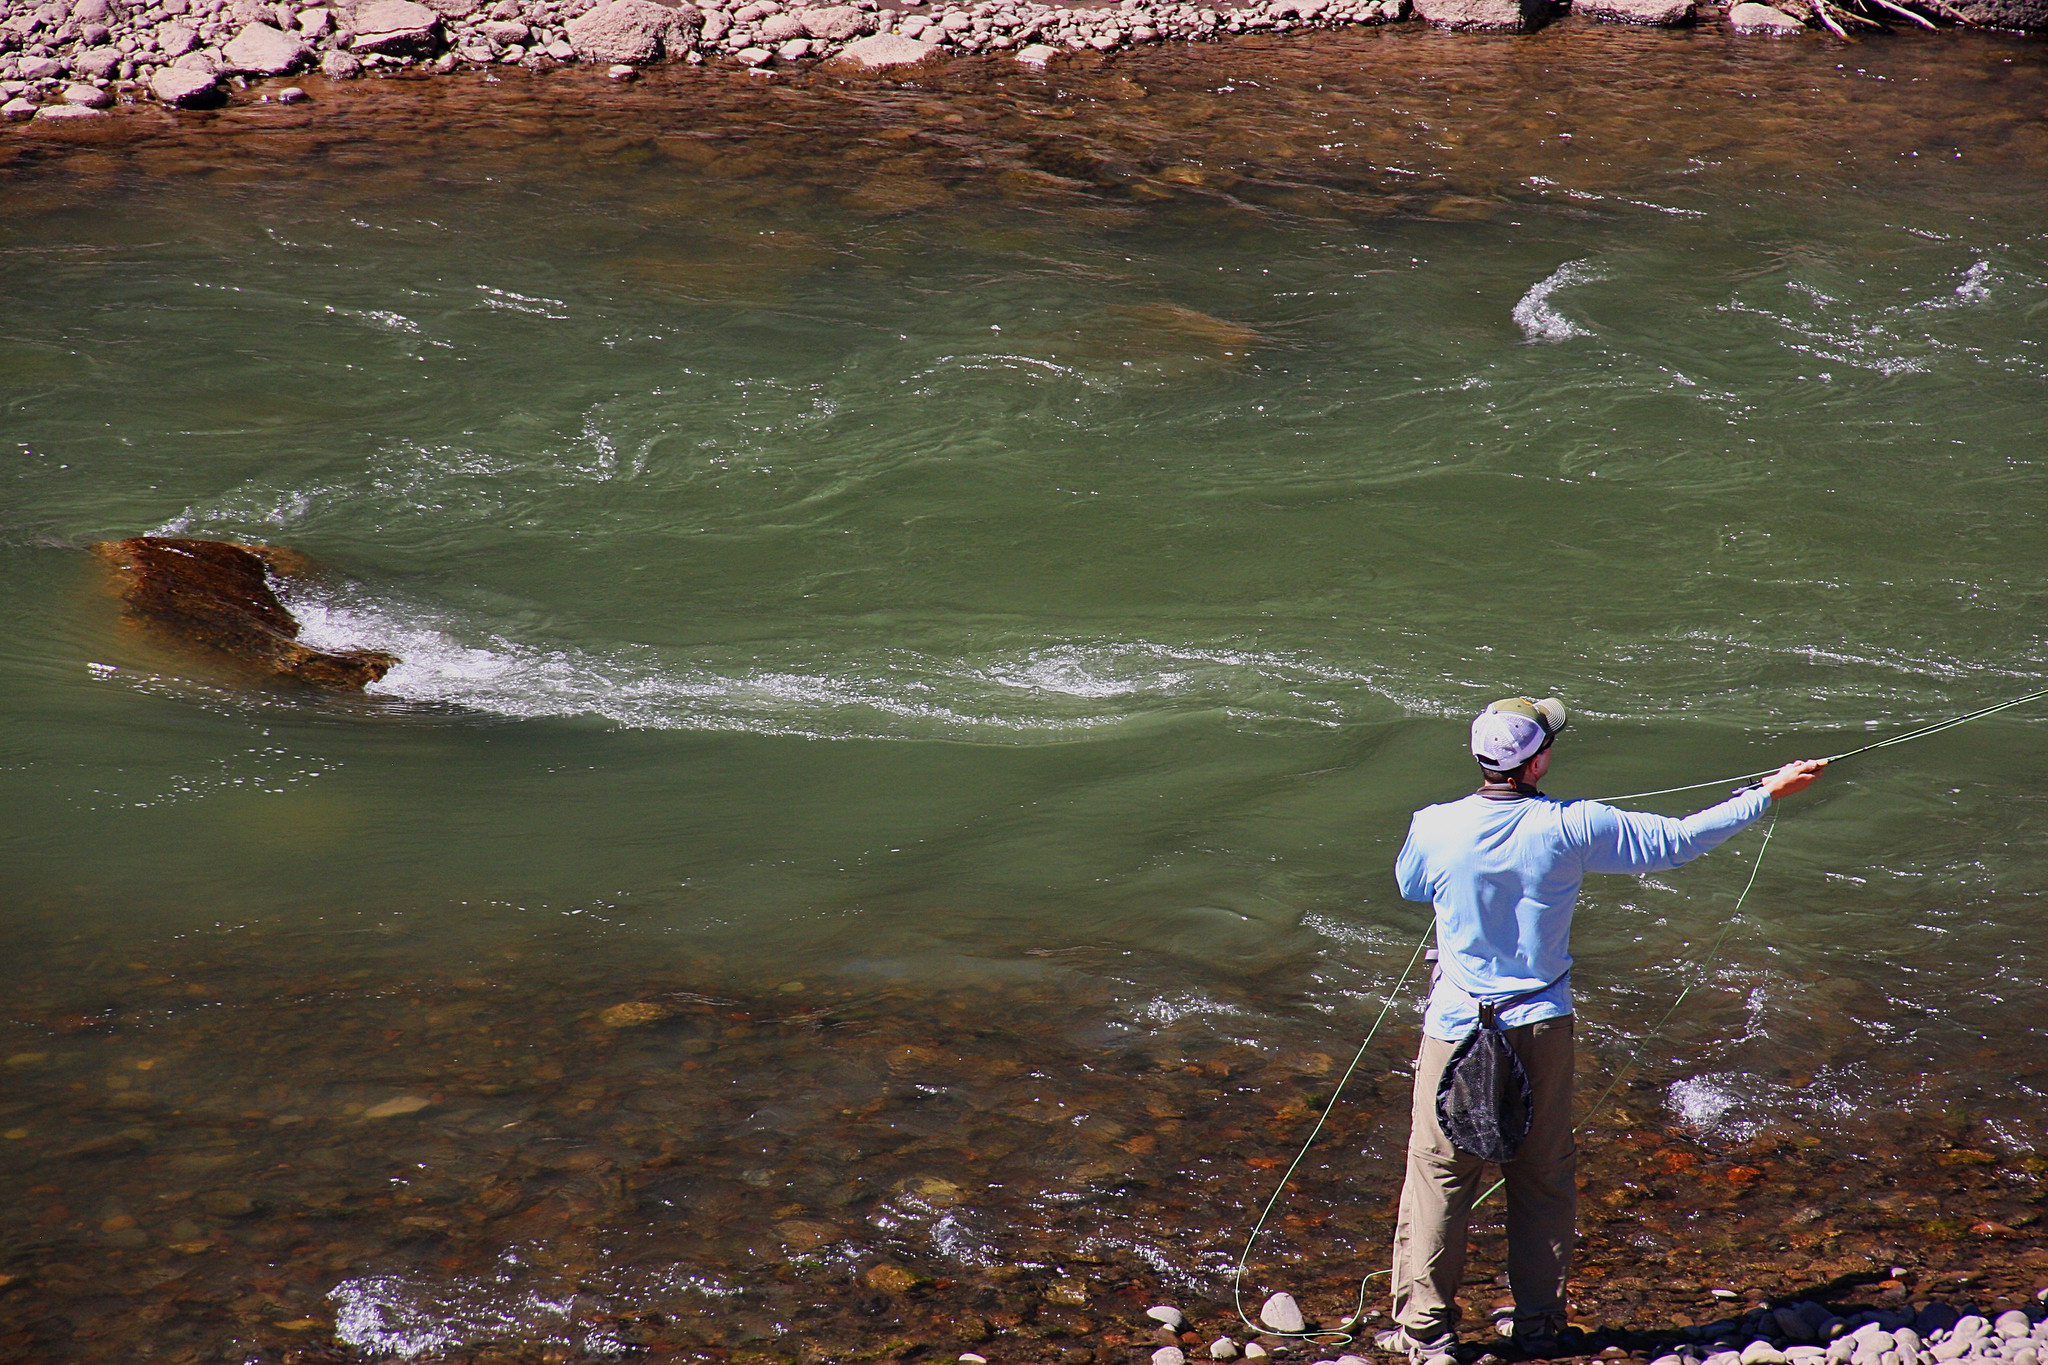 Fly fishing in yellowstone national park quickies for Yellowstone national park fishing